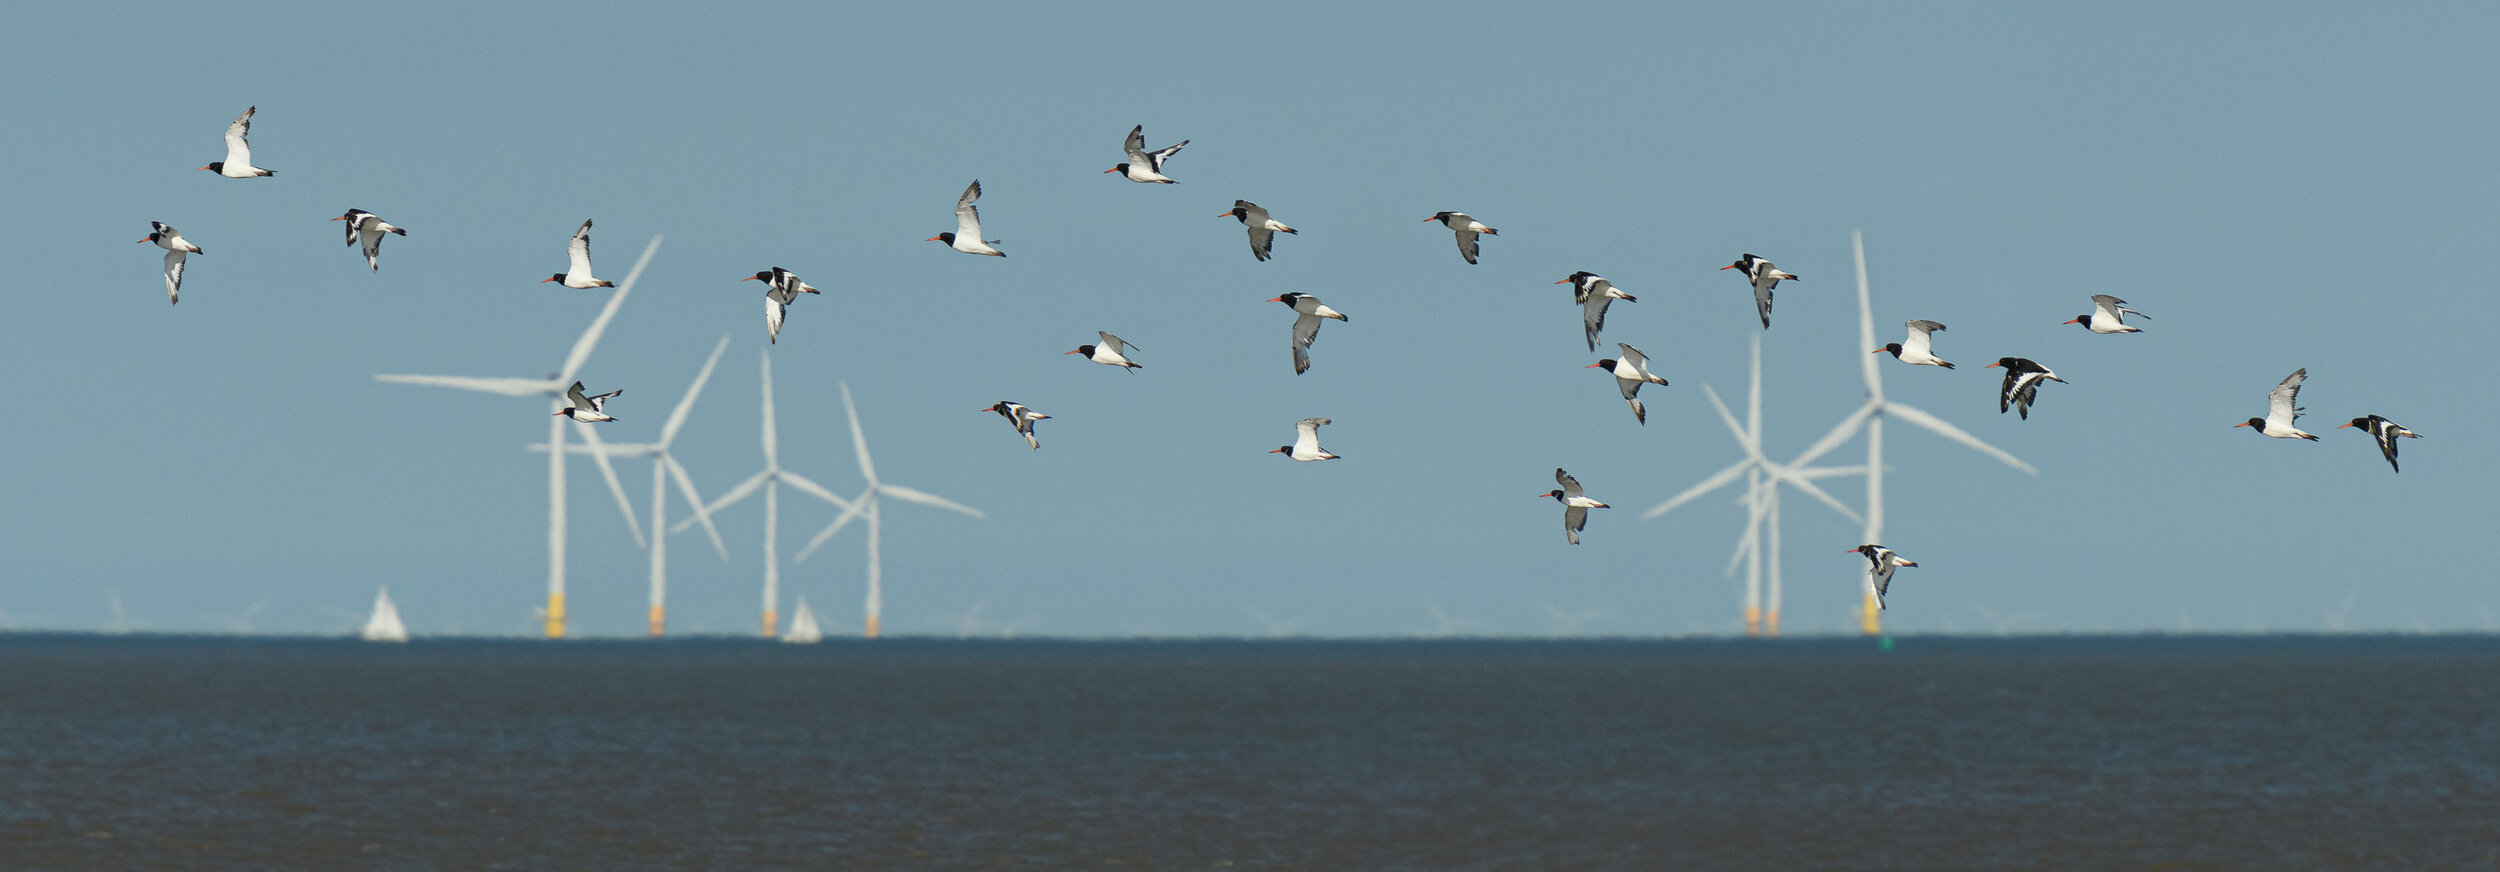 A group of oystercatchers passes in front of a wind farm off the coast of the Isle of Sheppey, Kent, UK. (Click for larger view)